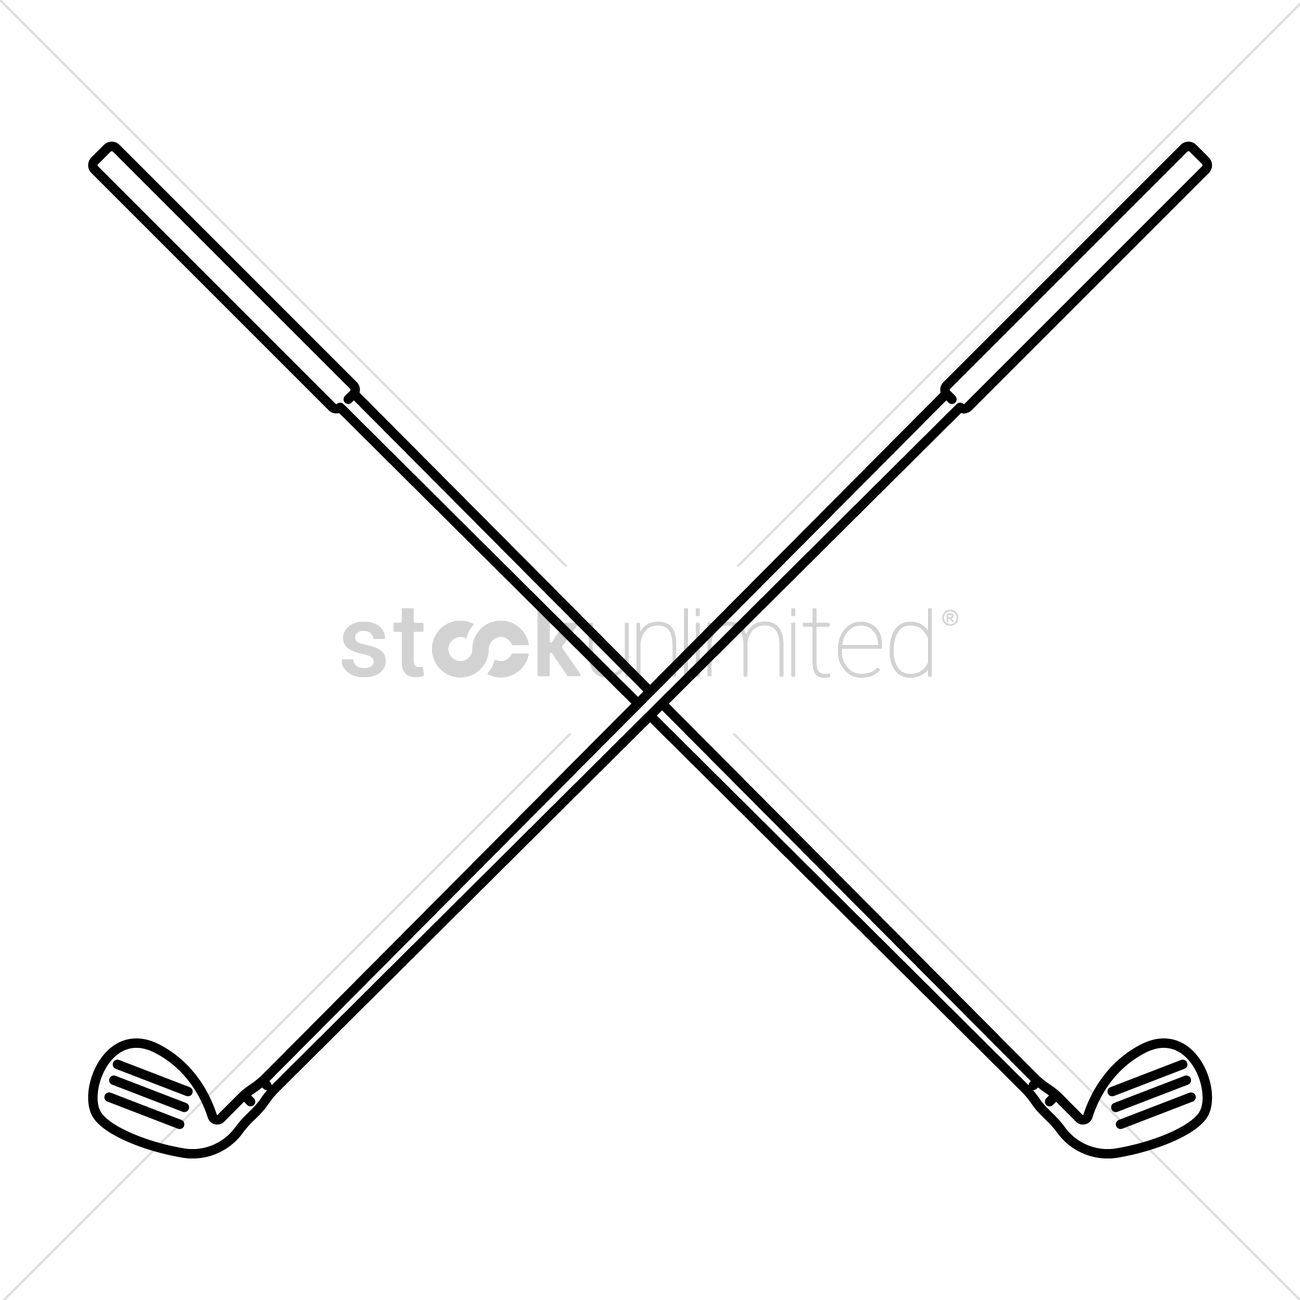 Crossed Golf Clubs Vector Image 1524173 Stockunlimited